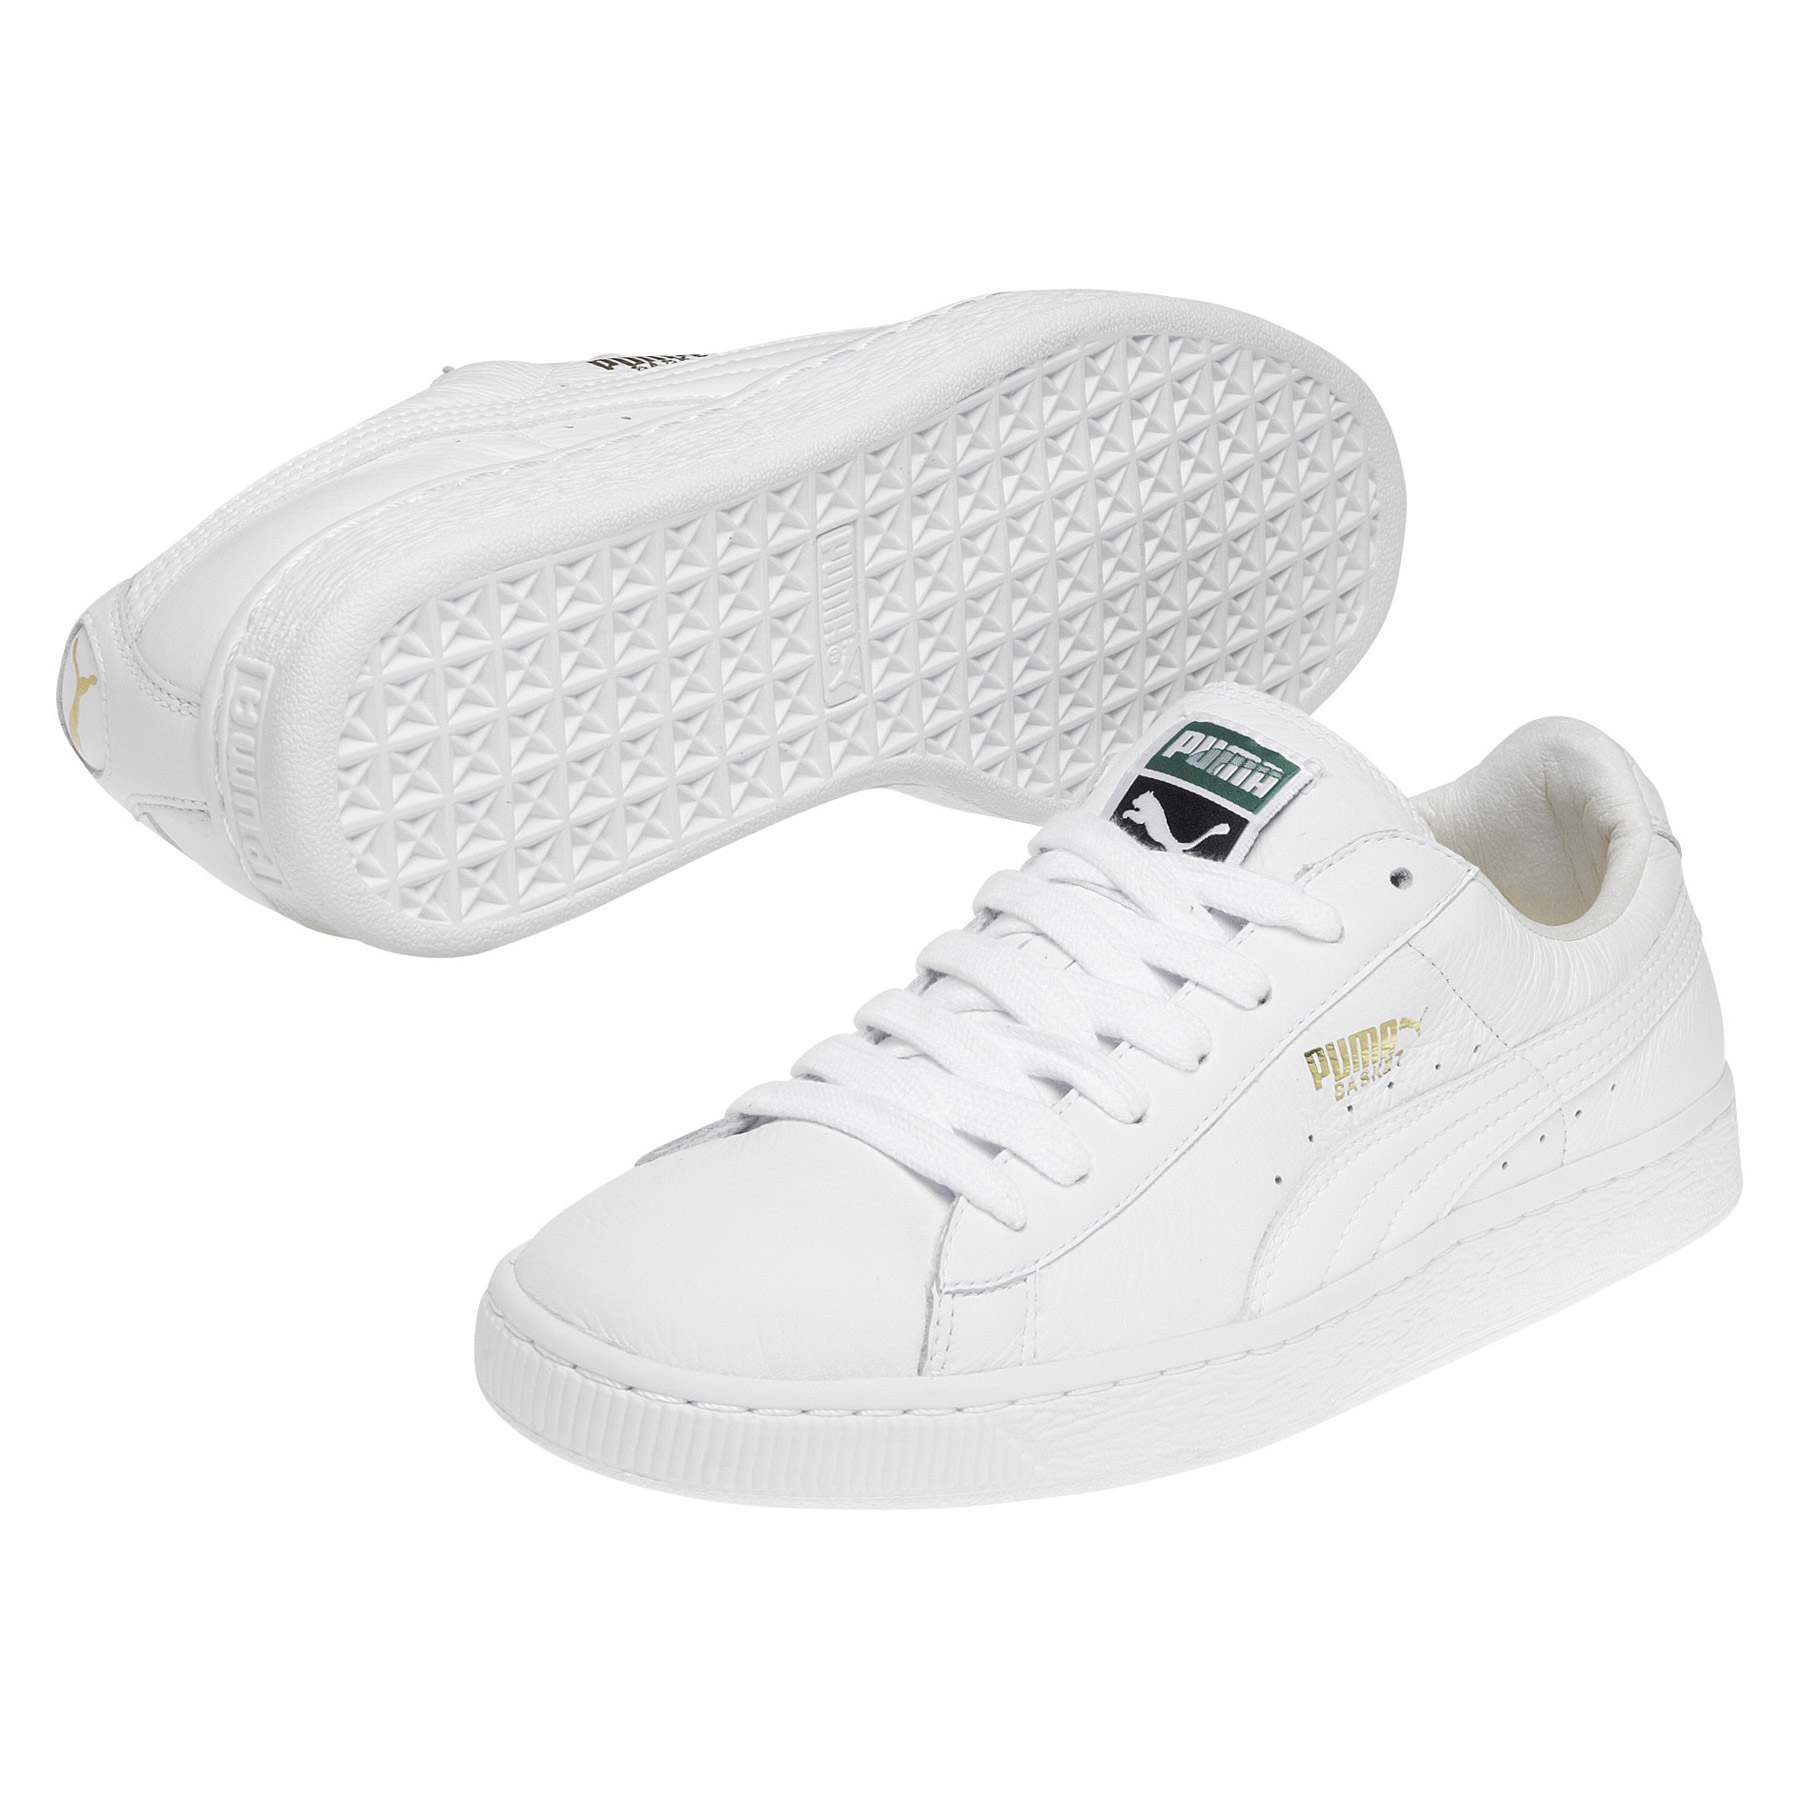 Puma Basket Classic Trainer - White/White